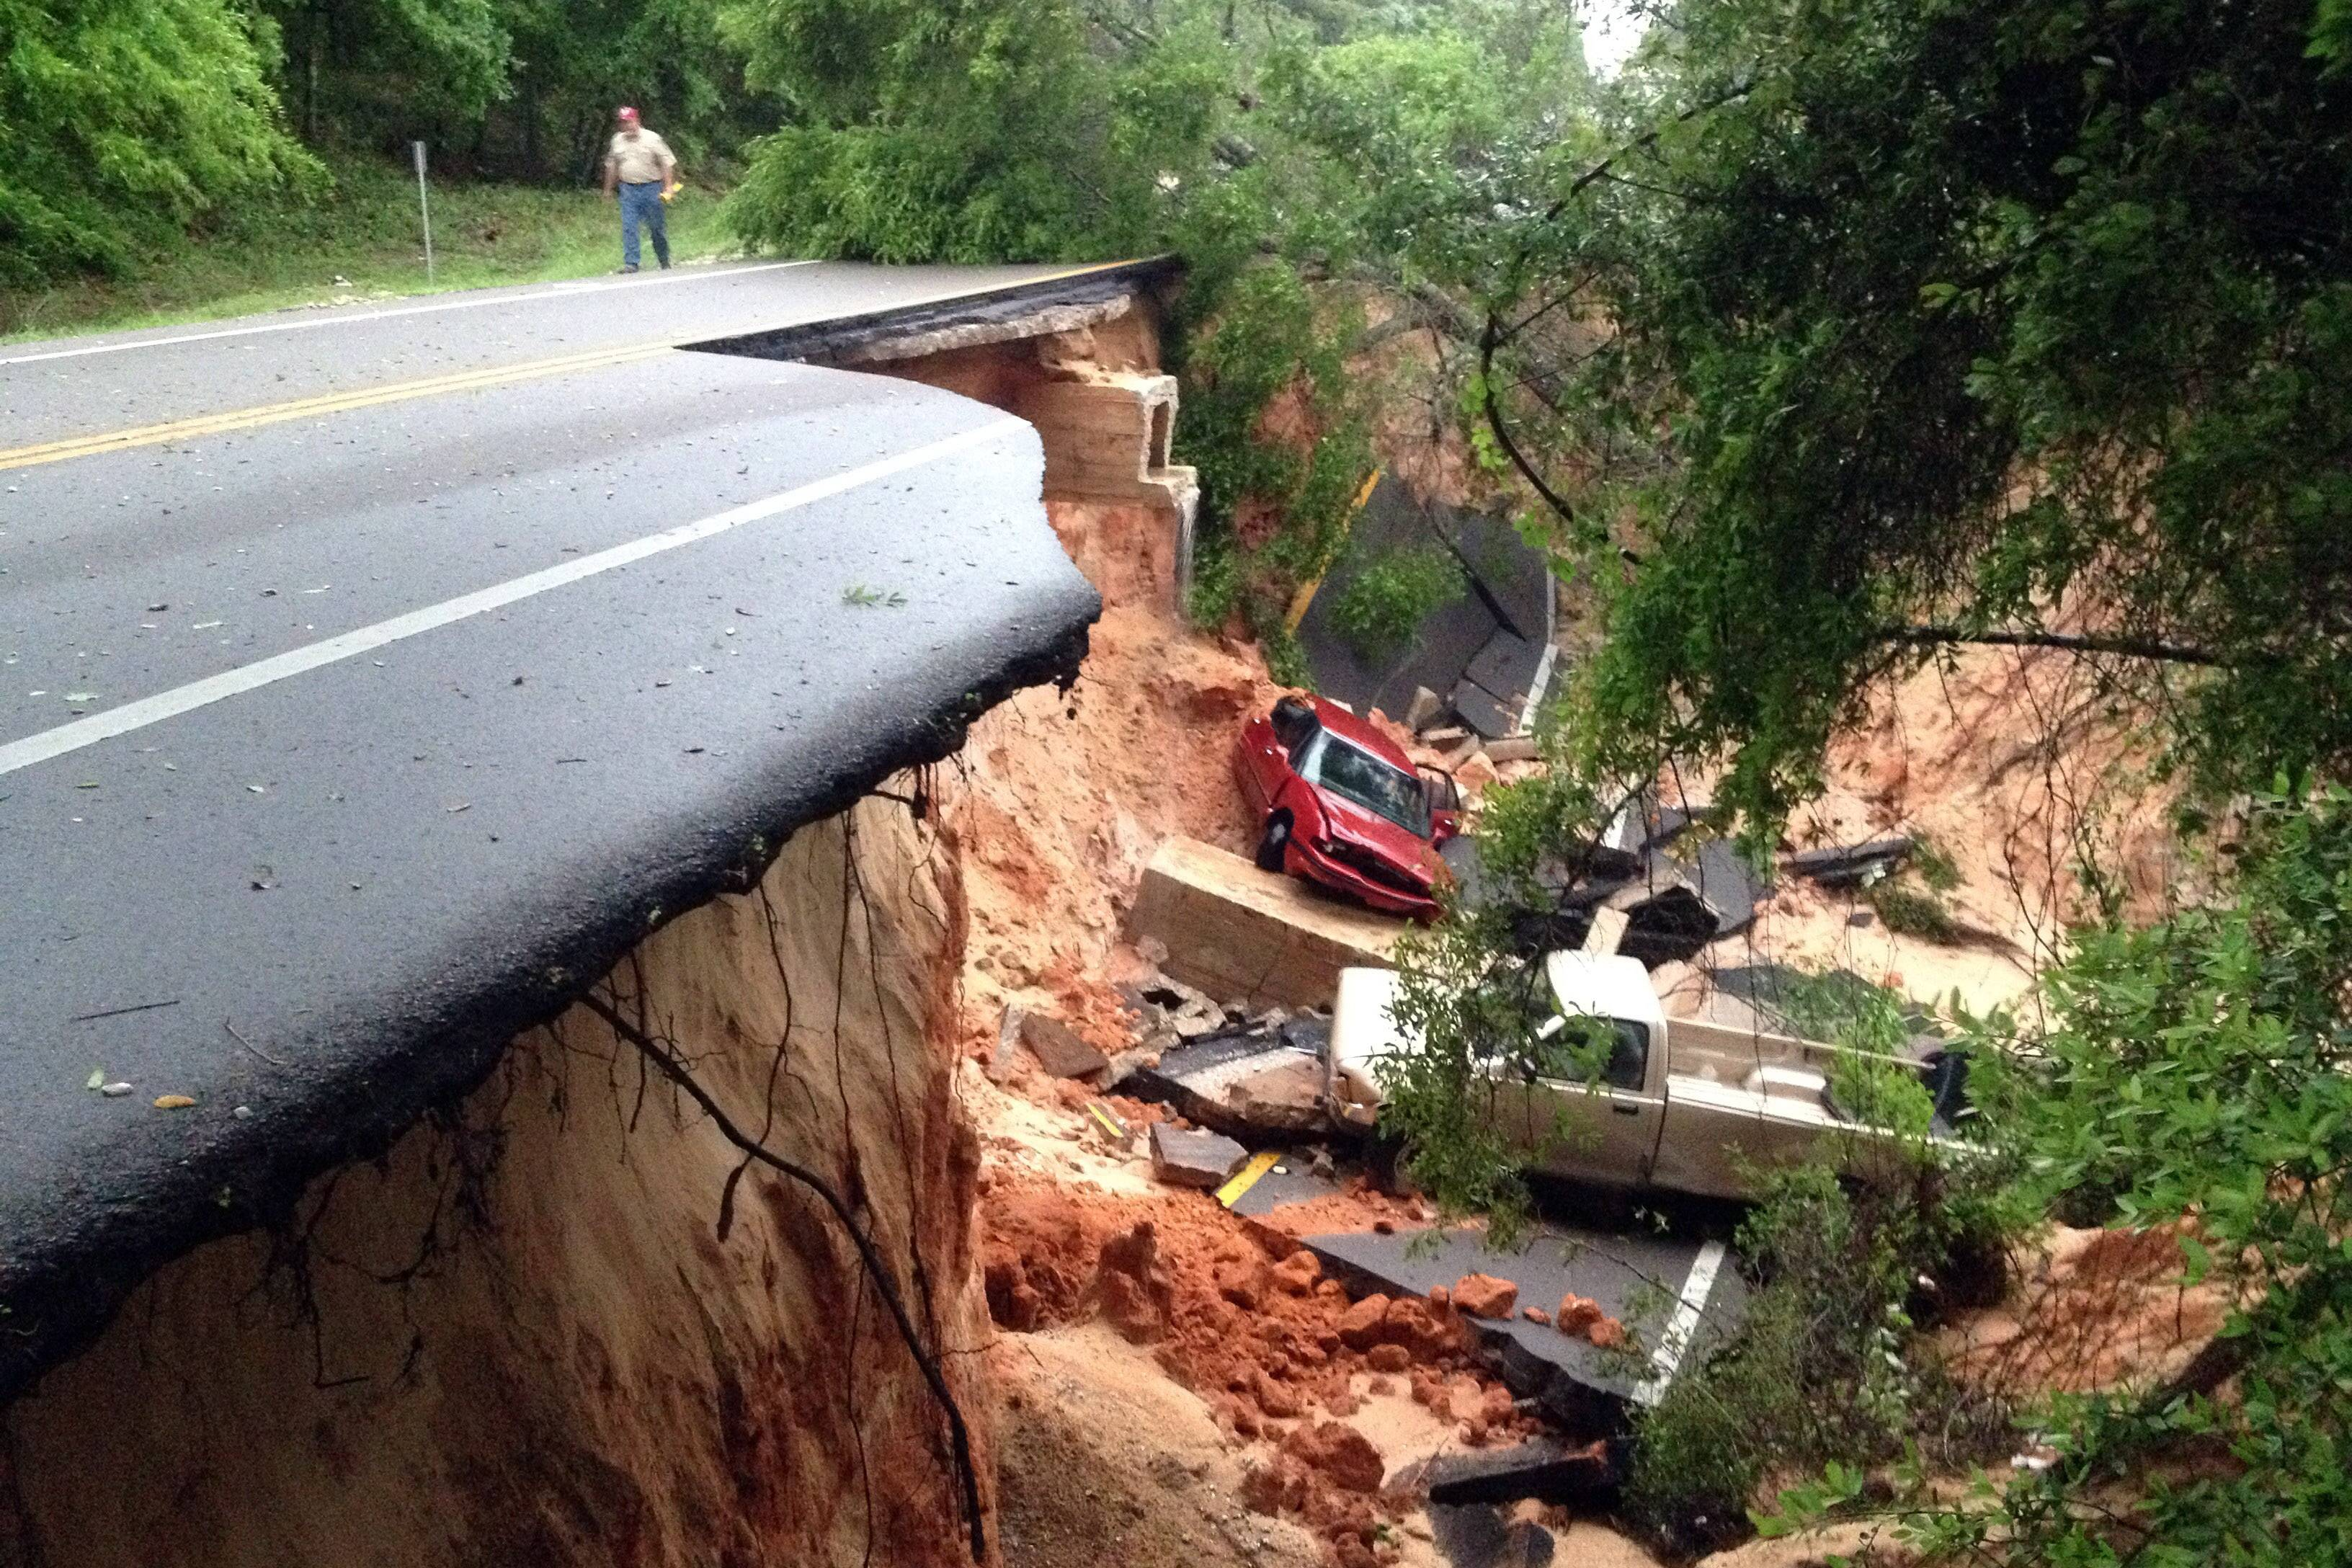 Vehicles rest at the bottom of a ravine after the Scenic Highway collapsed near Pensacola, Fla., Wednesday. Heavy rains and flooding have left people stranded in houses and cars in the Florida Panhandle and along the Alabama coast.